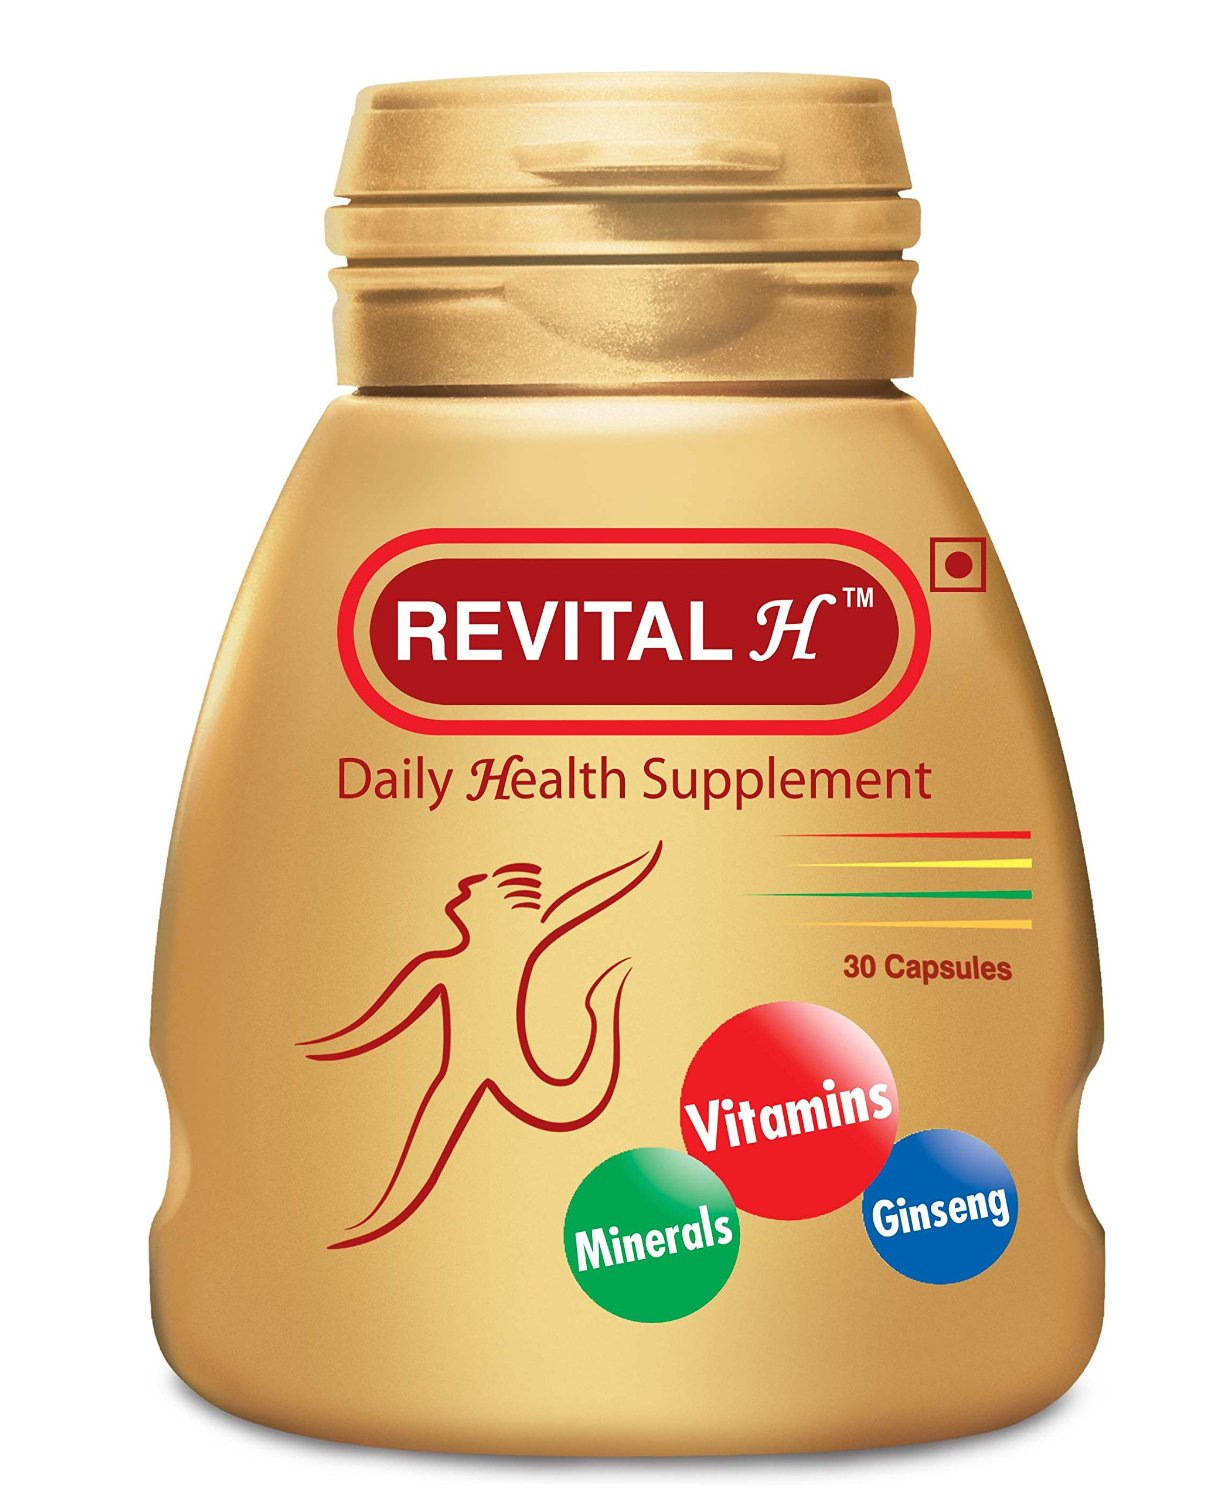 REVITAL H Reviews, Price, Protein Powder, Side Effects